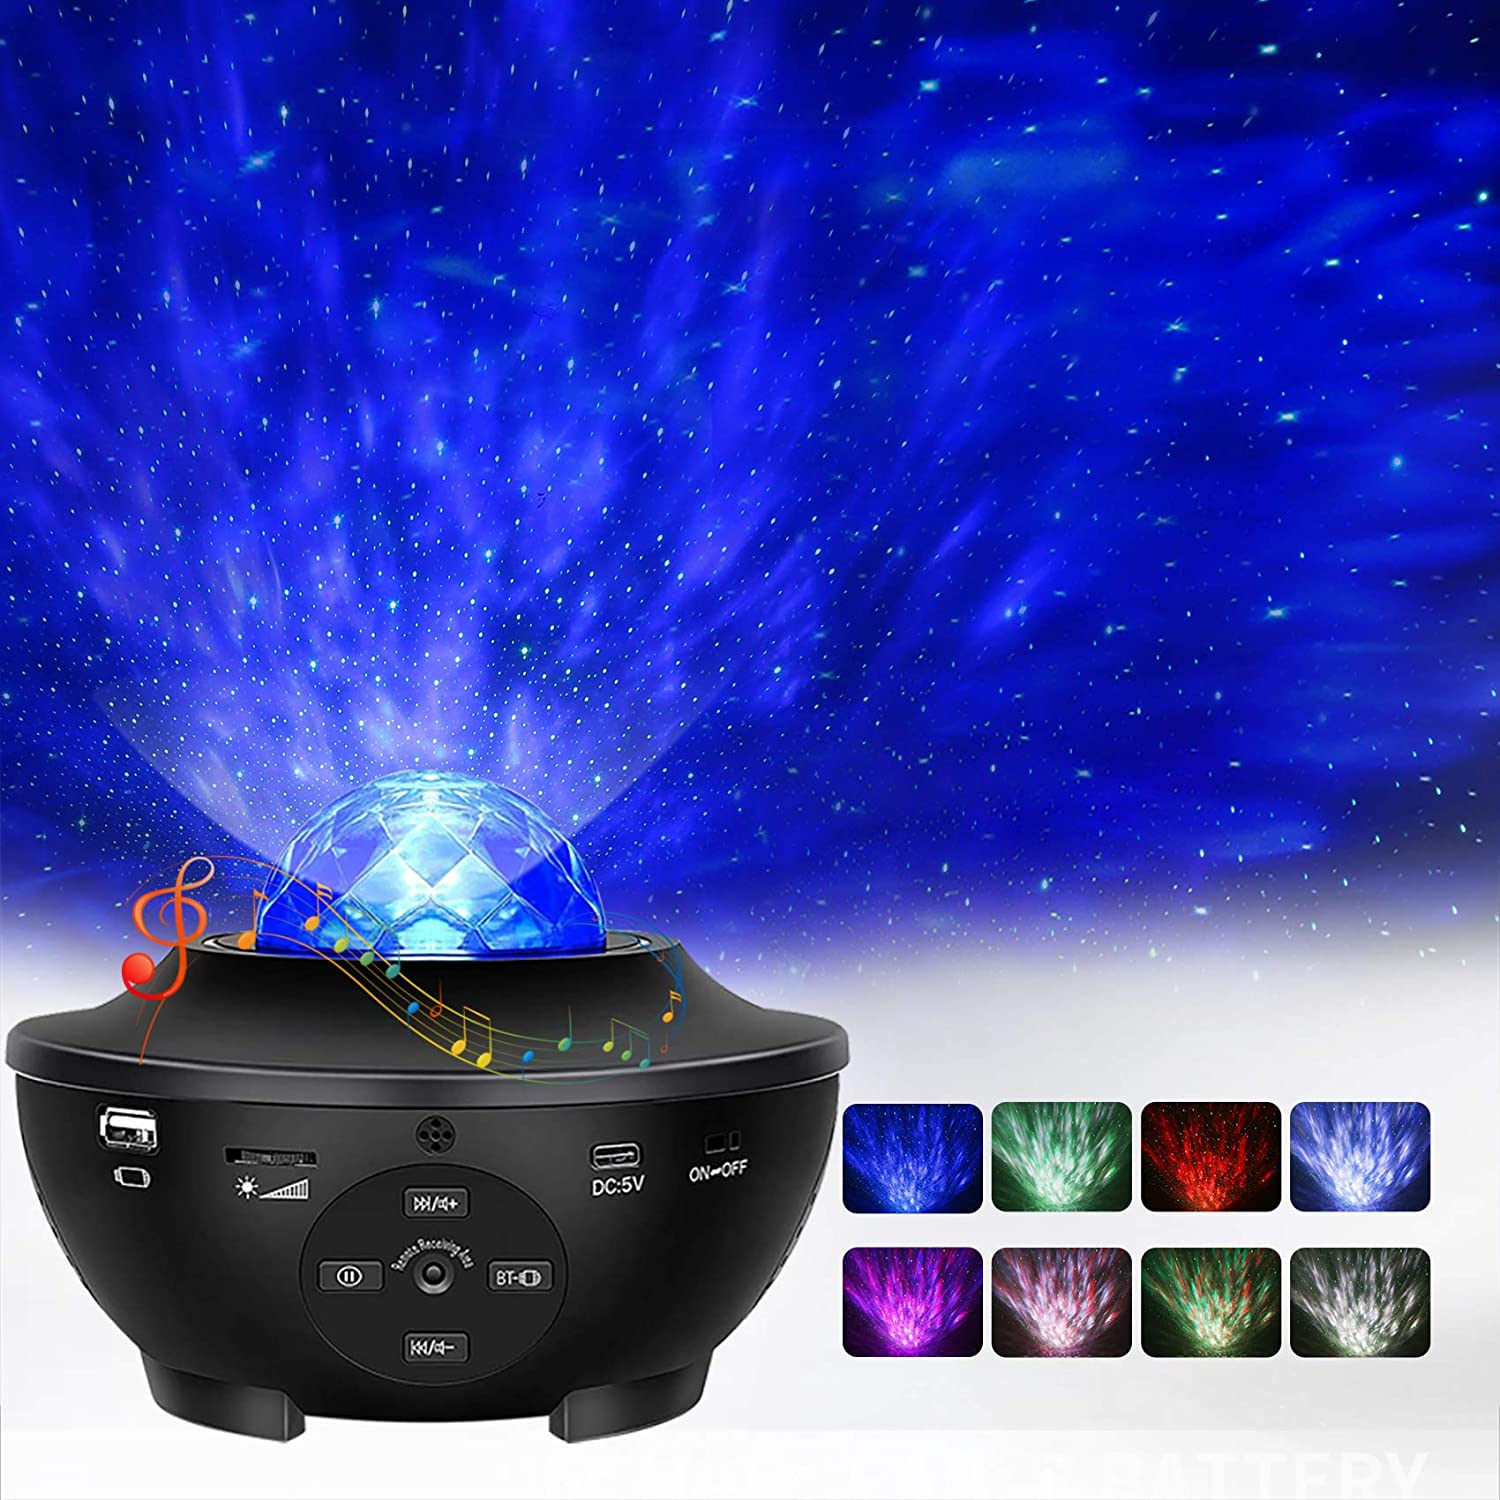 Star Projector, Ocean Wave Night Light Projector with Adjustable Lightness Remote Control Timer 10 Lighting Modes Built-in Music Speaker Galaxy Light for Kids Adult Bedroom Living Room